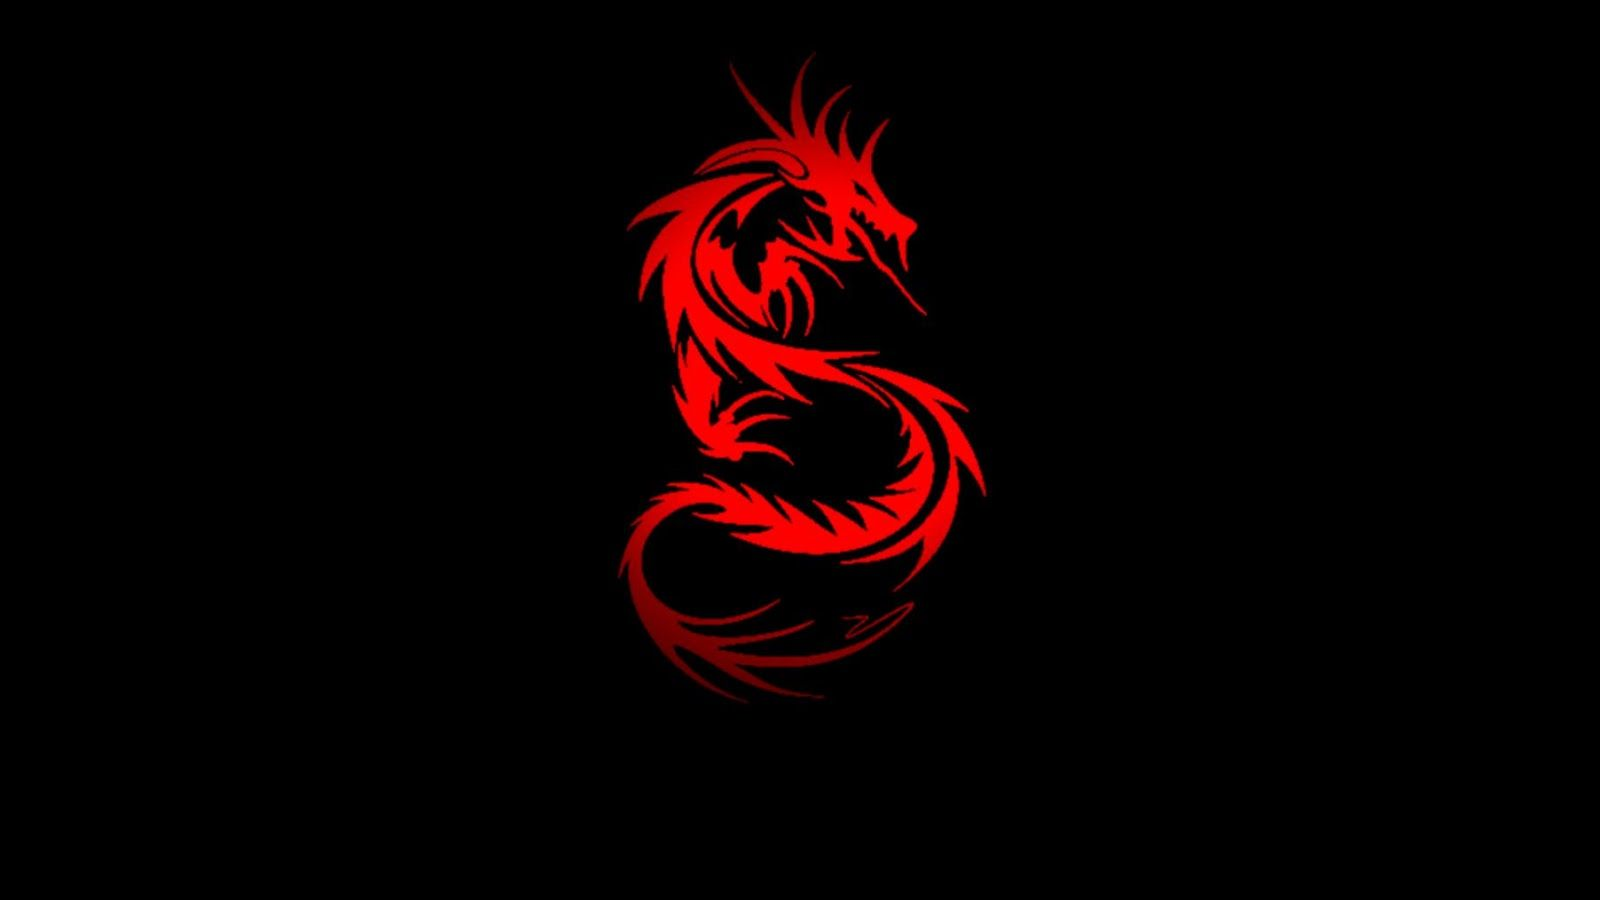 Black Dragon Wallpaper Hd 1000 800 Black Dragon Wallpapers Hd 43